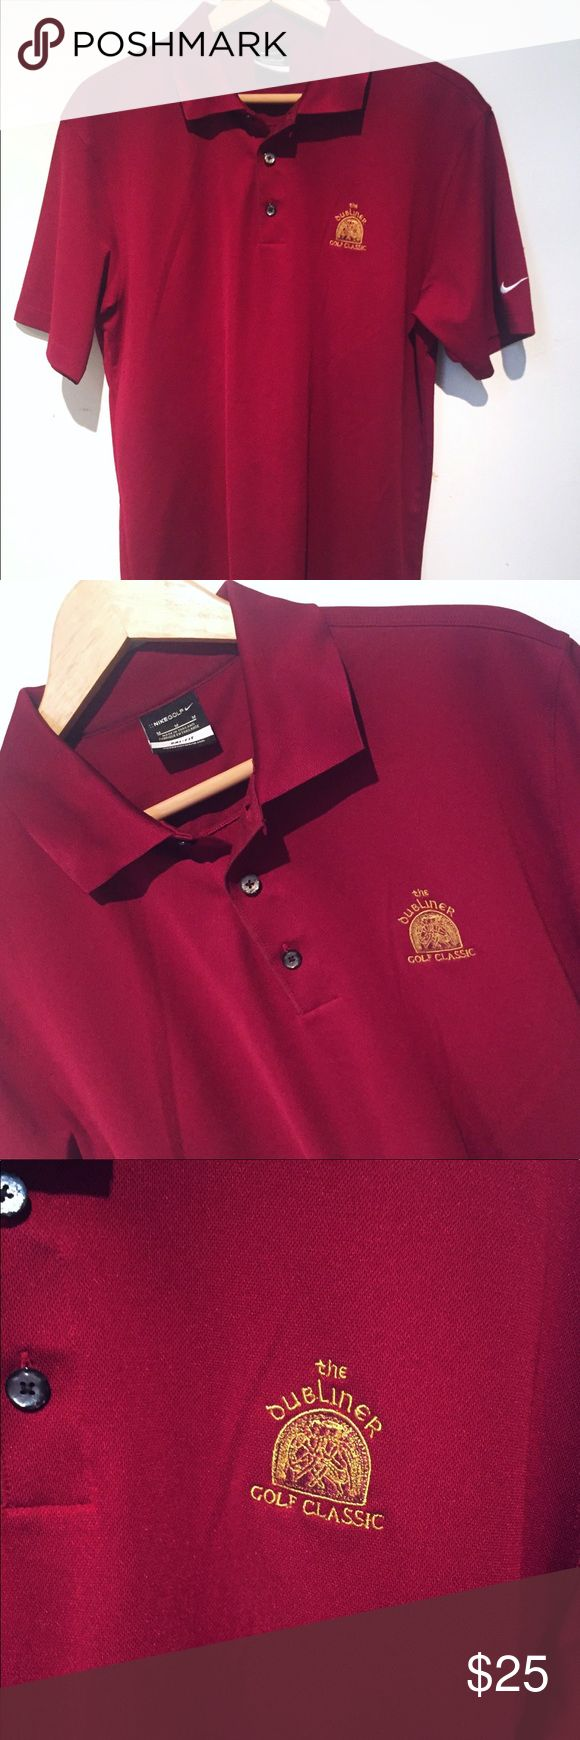 EUC Nike red polo shirt. Dubliner Classic. Size M EXCELLENT used condition. Men's red Nike Polo. Emblem is of the Dubliner Classic. Size Medium. Nike Shirts Polos